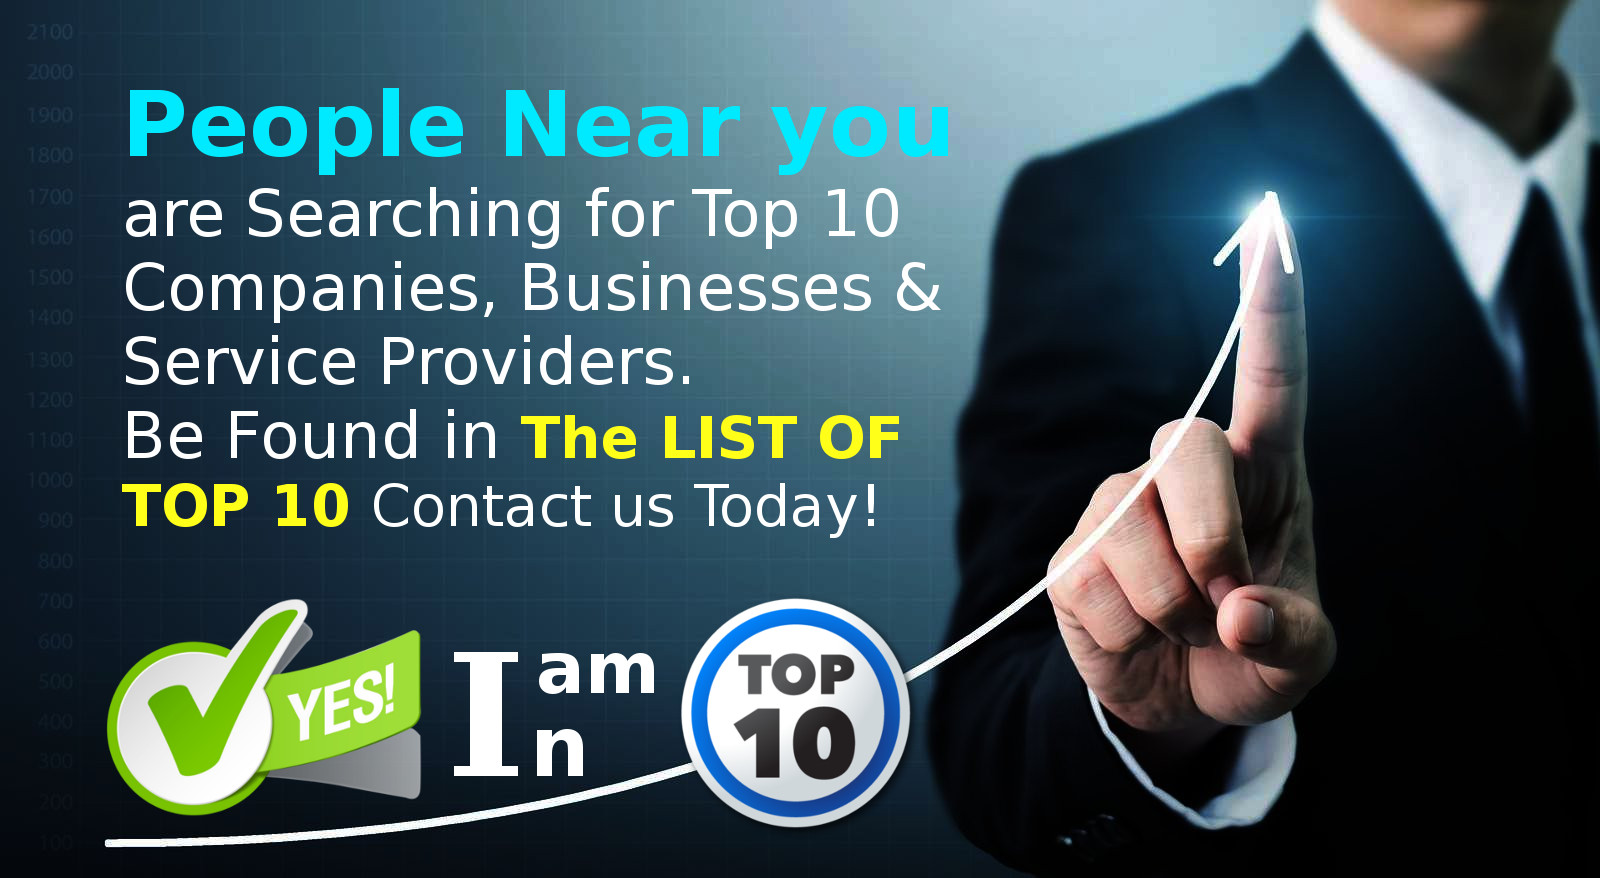 List of Top 10 Companies